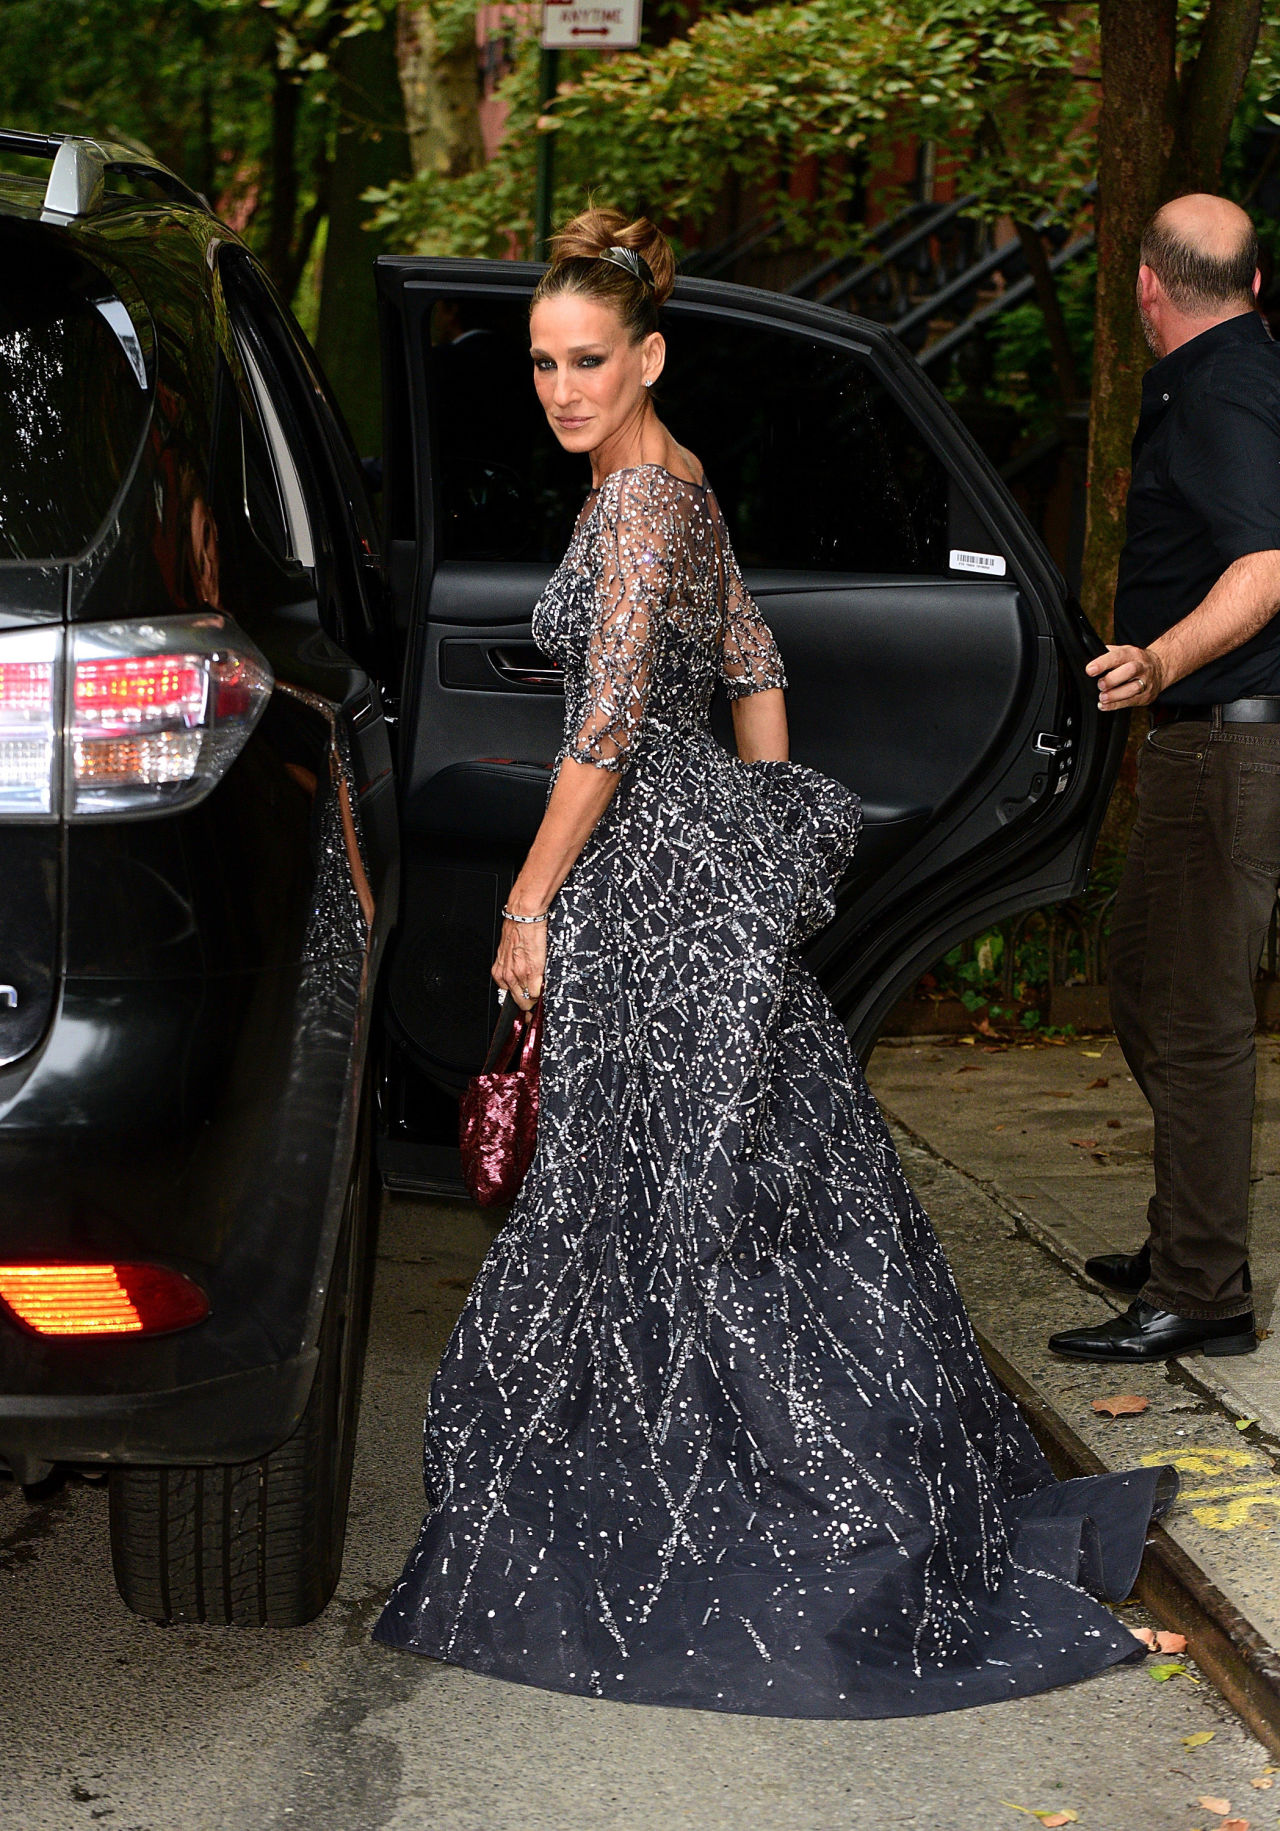 Sarah Jessica Parker Went to the Ballet as Carrie Bradshaw